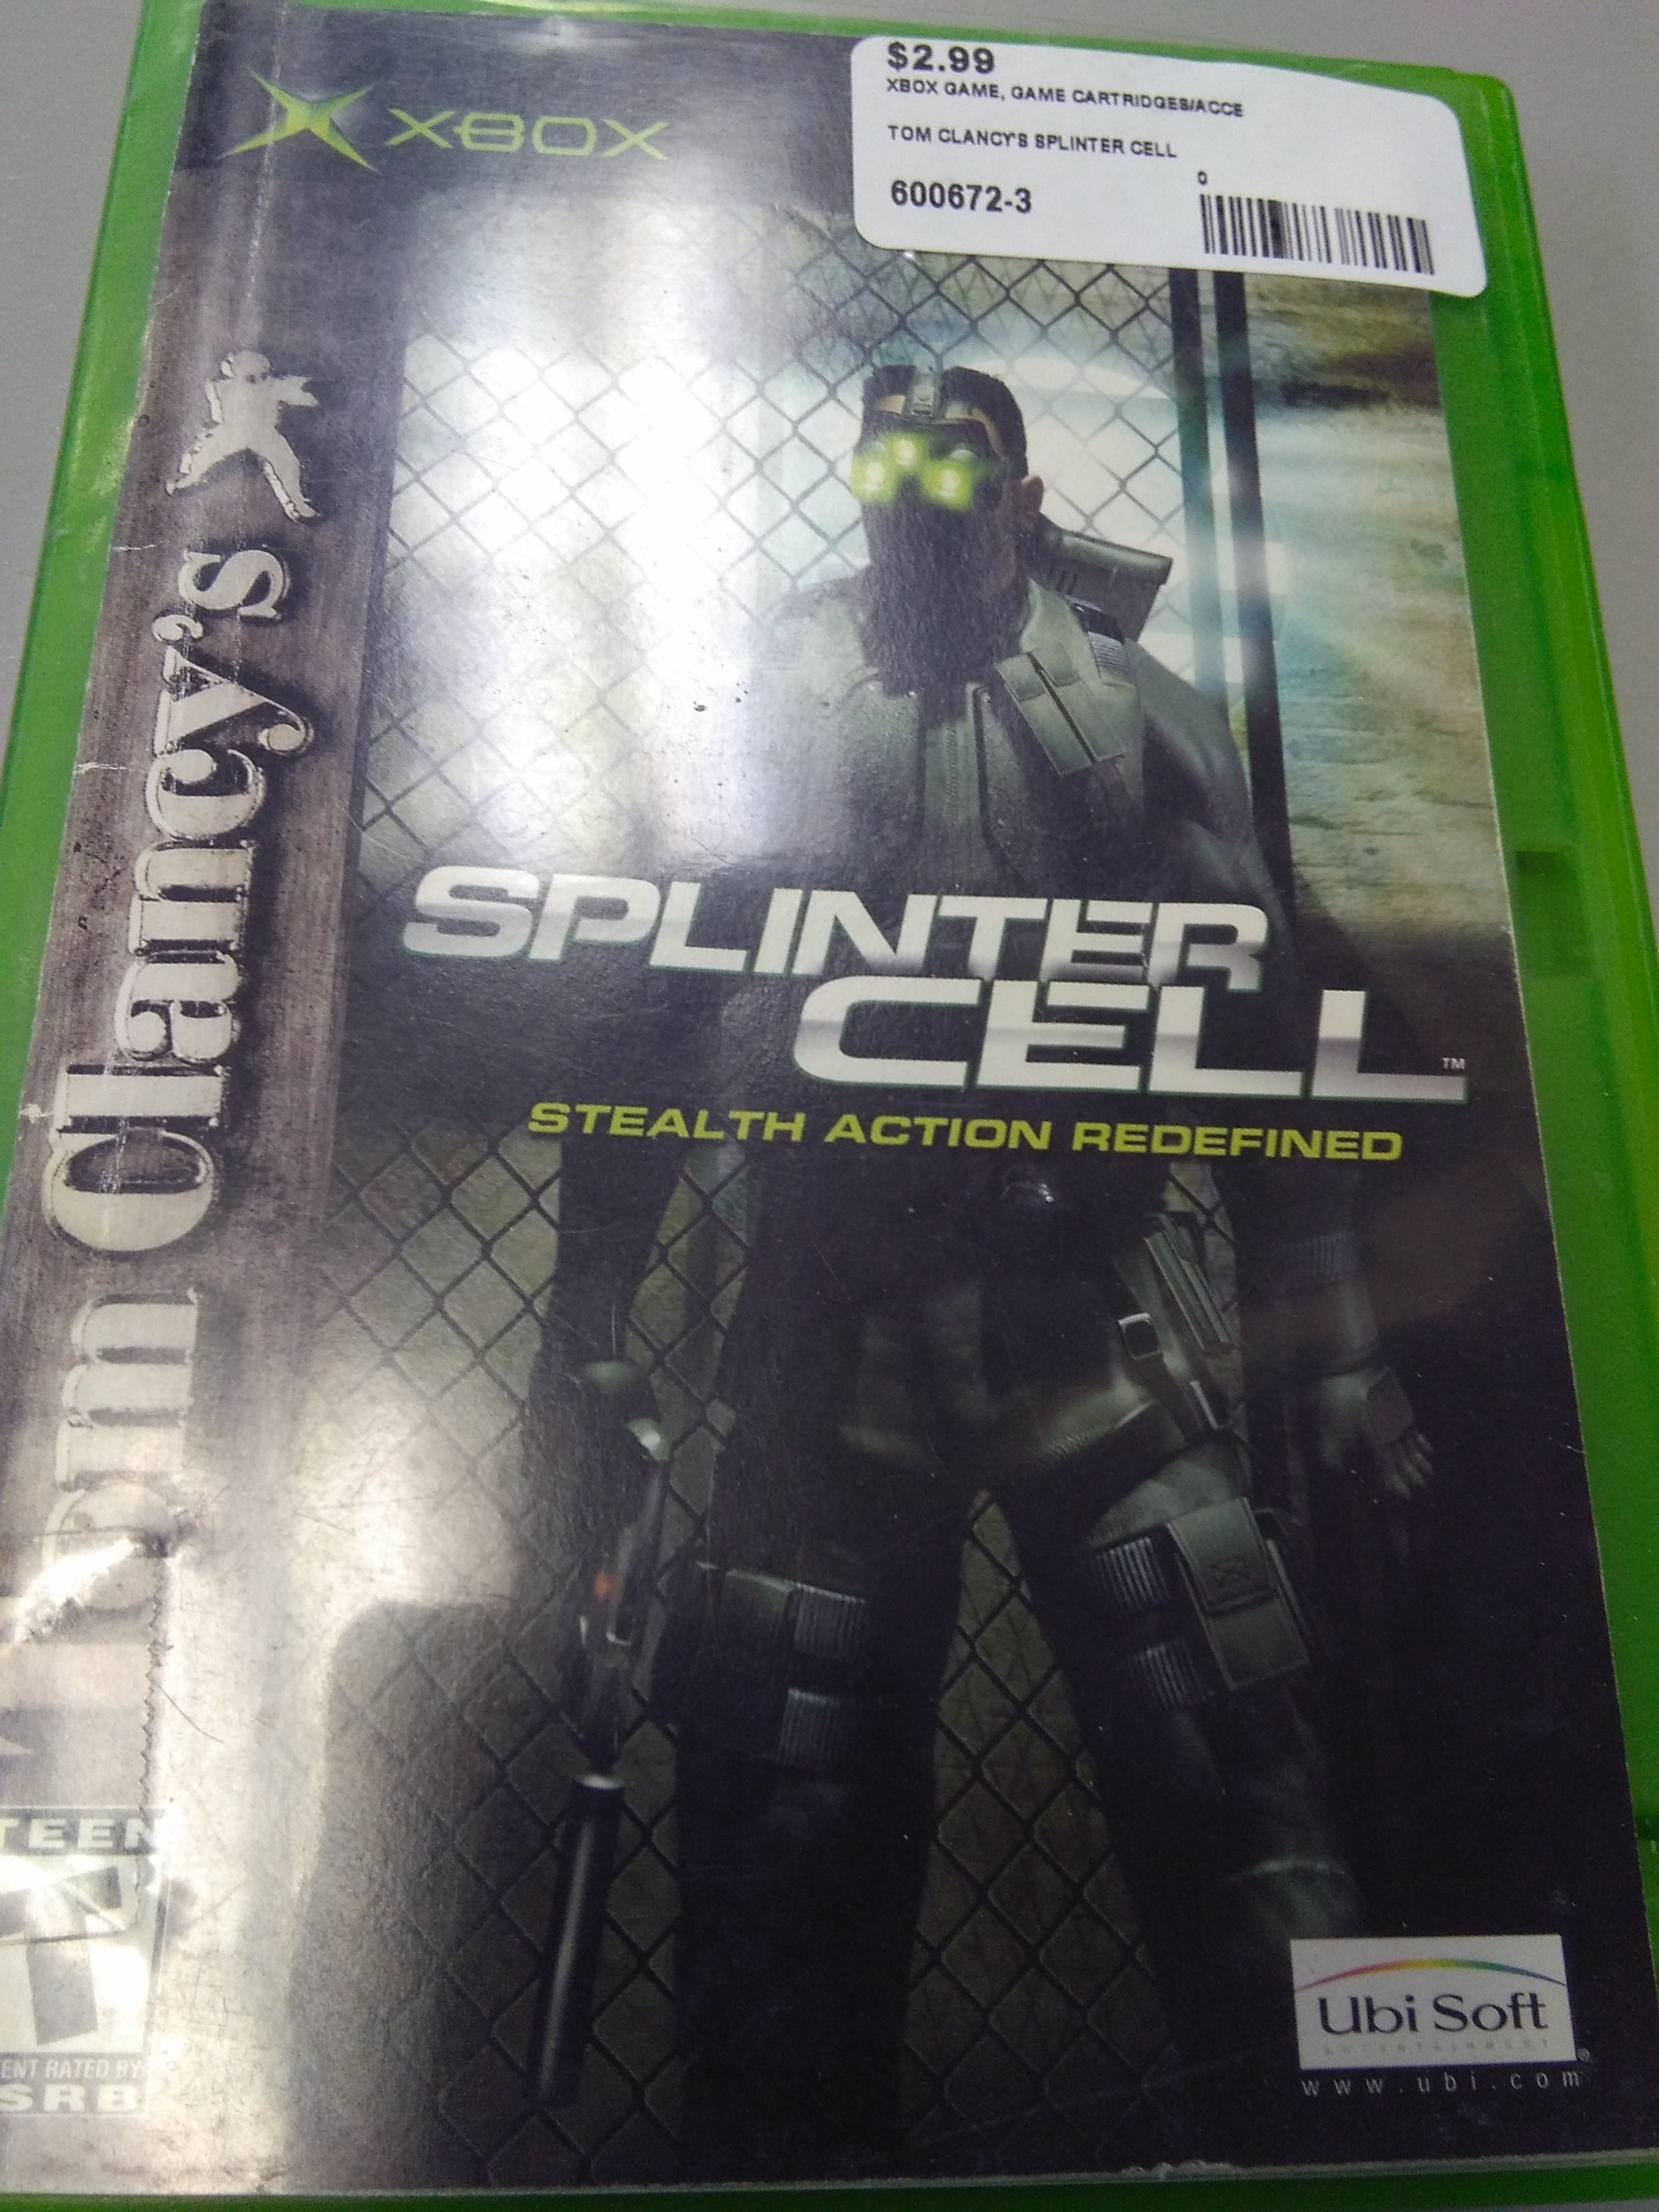 TOM CLANCY'S SPLINTER CELL XBOX GAME